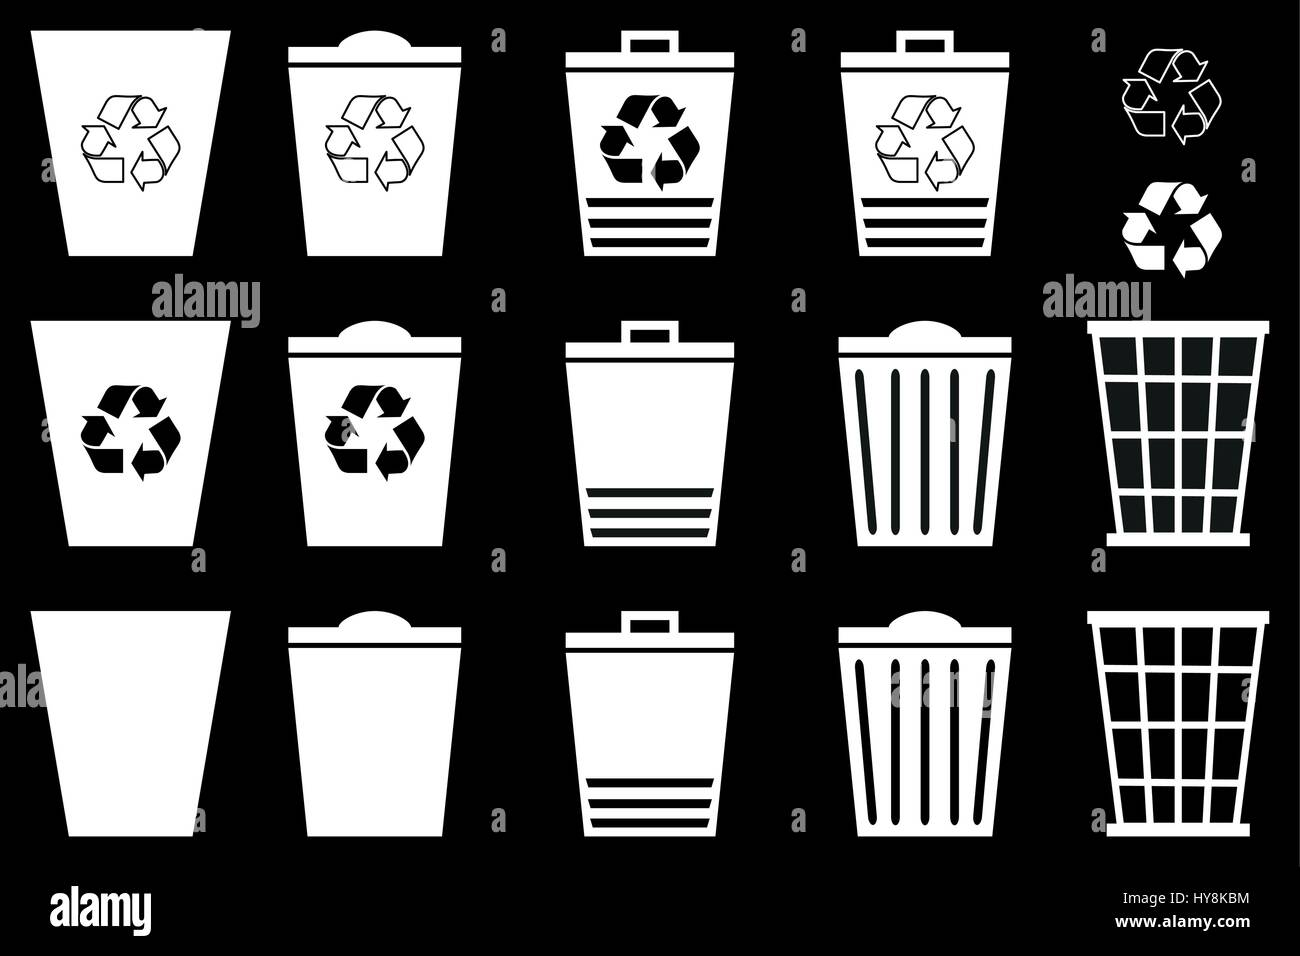 Waste bins - set, Vector Set Recycle Bins for Trash and Garbage, trash icon - Stock Vector